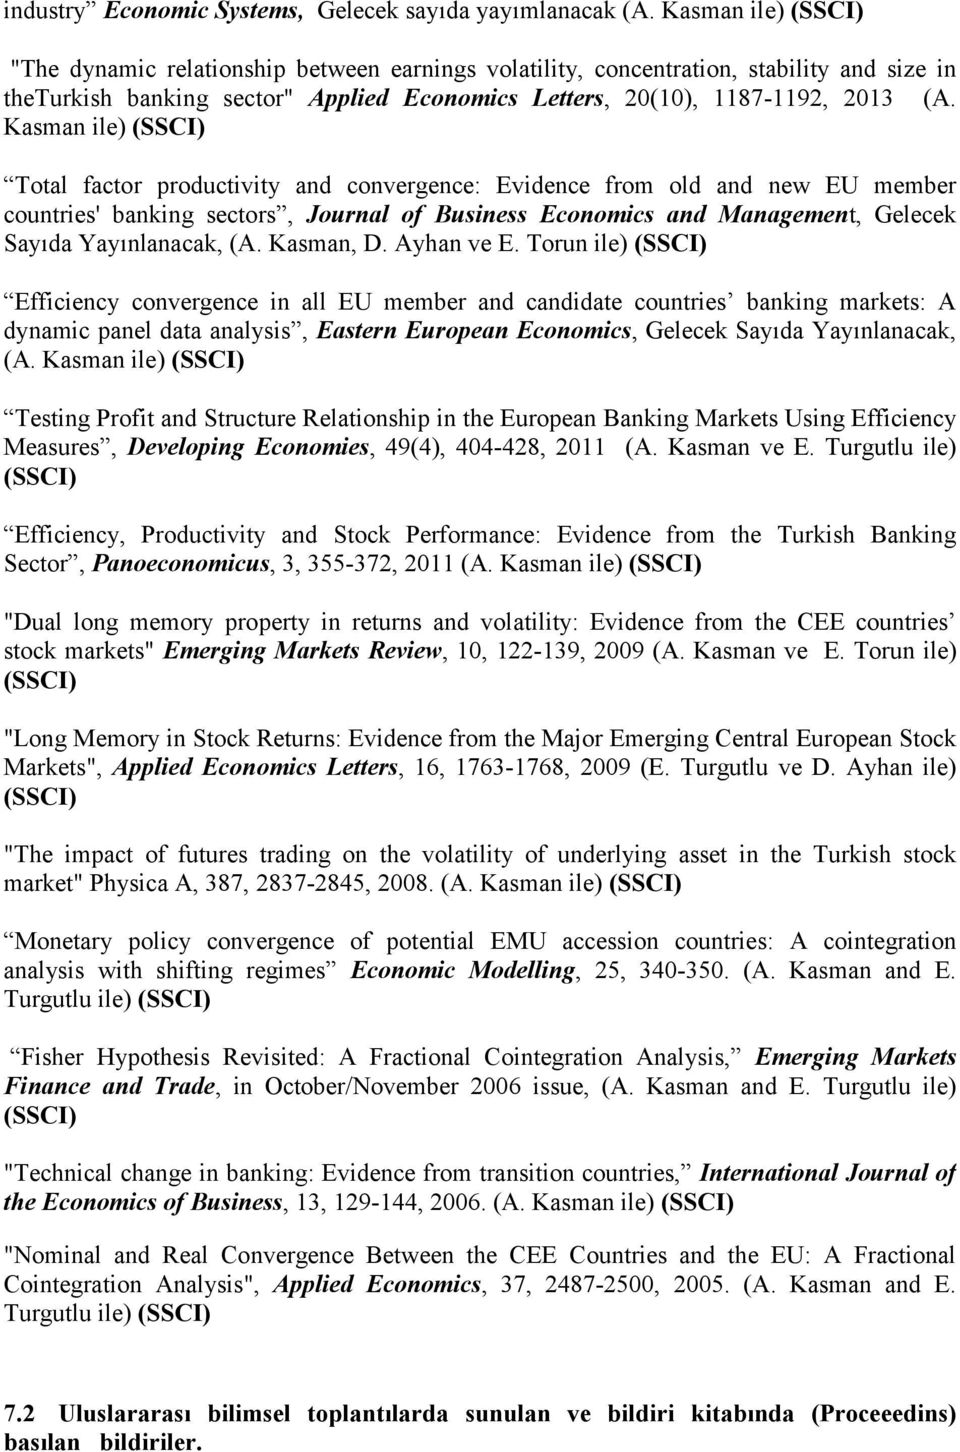 Kasman ile) Total factor productivity and convergence: Evidence from old and new EU member countries' banking sectors, Journal of Business Economics and Management, Gelecek Sayıda Yayınlanacak, (A.